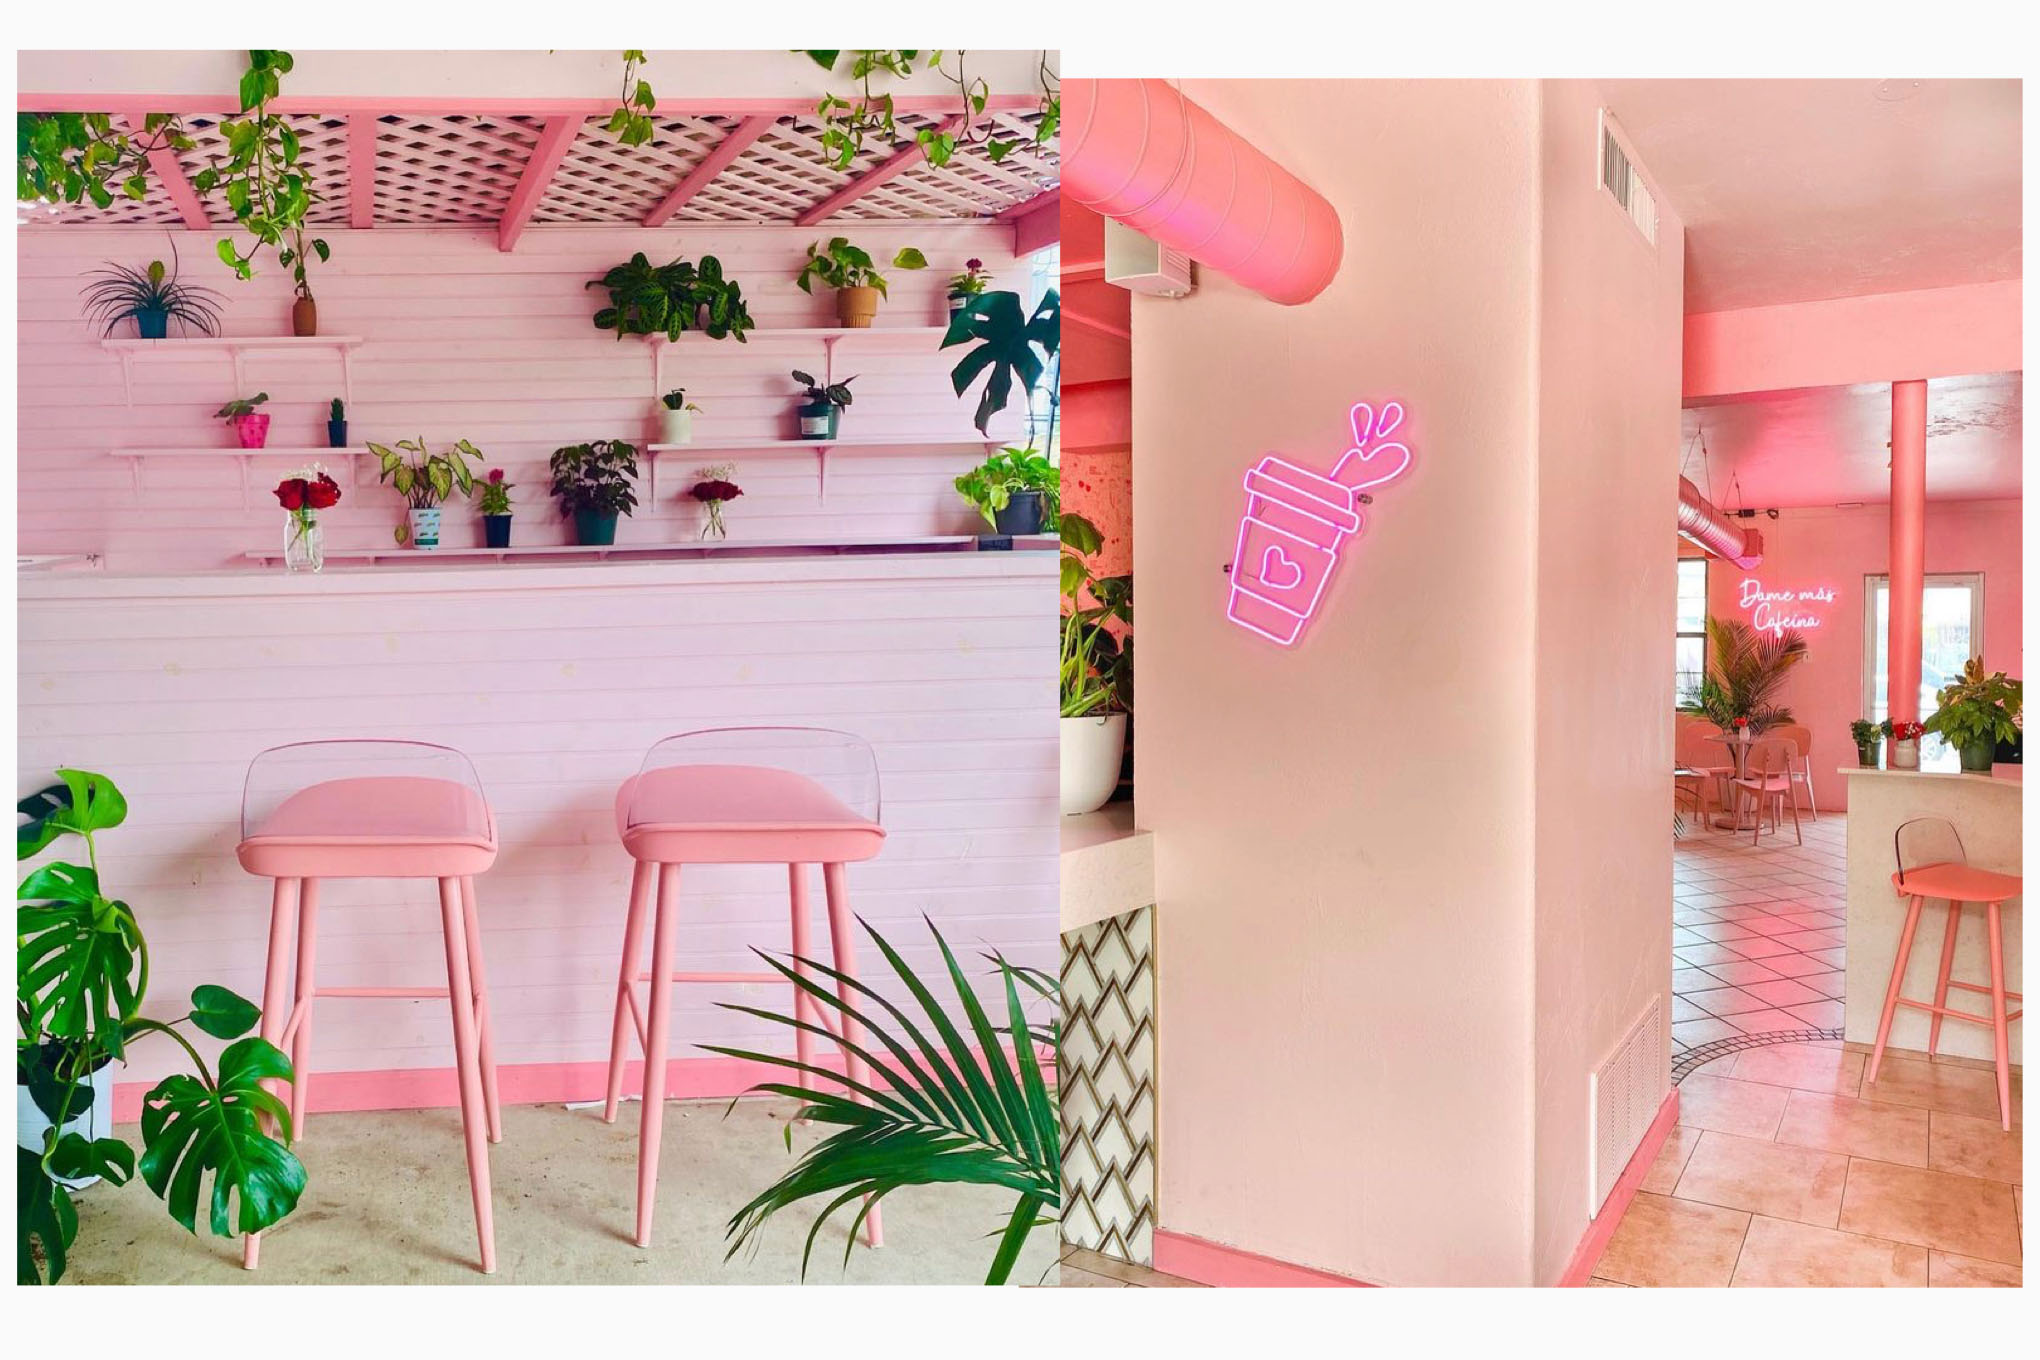 Revival Coffee's pink interior makes it one of the best spots to create a TikTok in Austin.